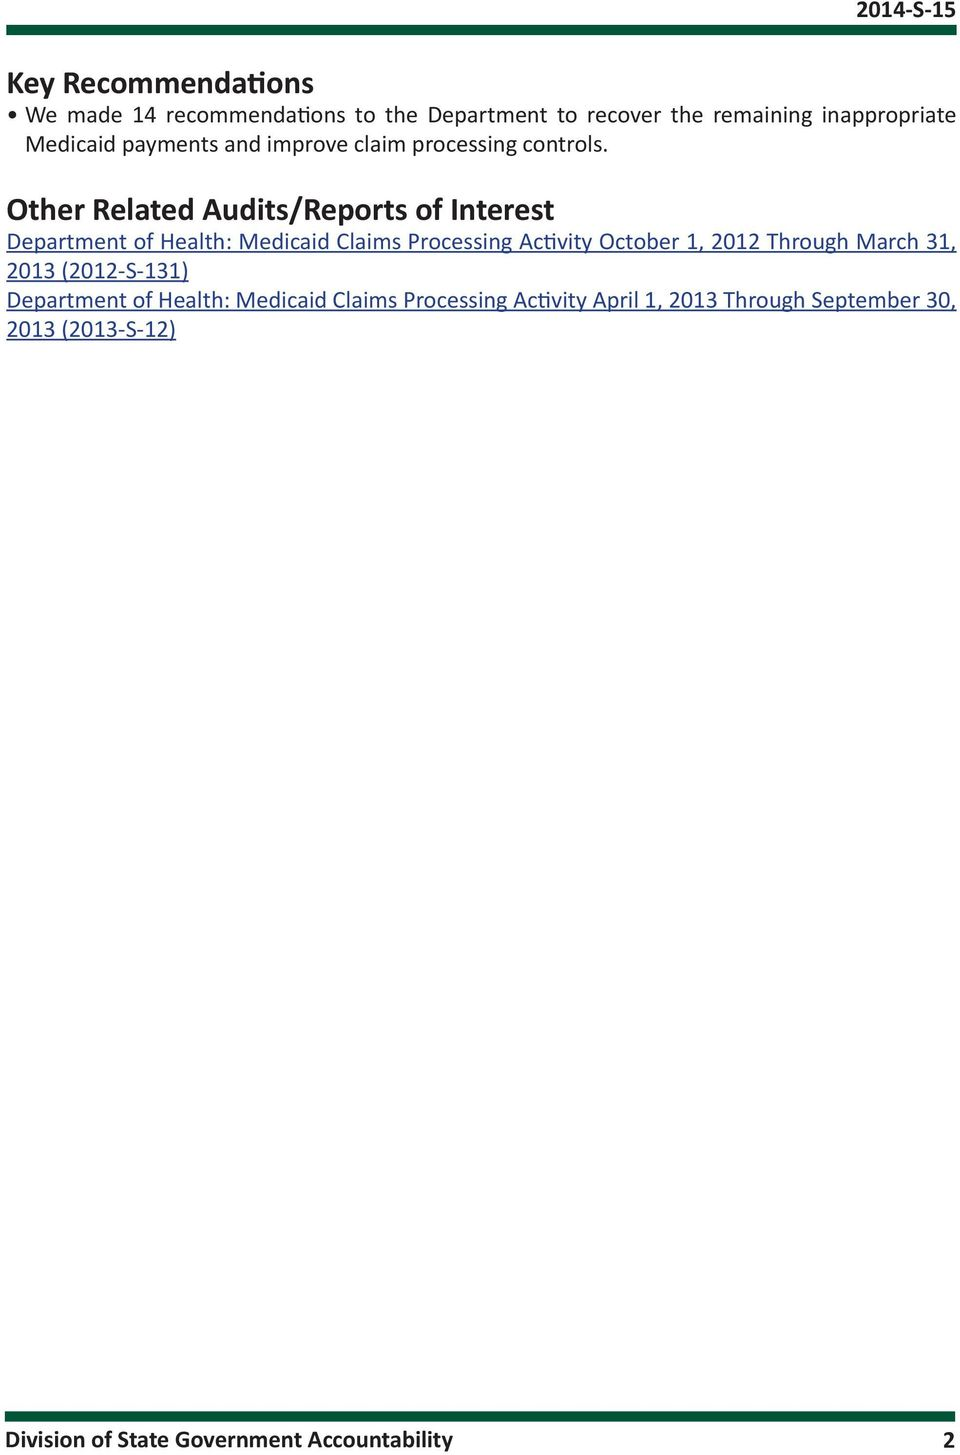 Other Related Audits/Reports of Interest Department of Health: Medicaid Claims Processing Activity October 1, 2012